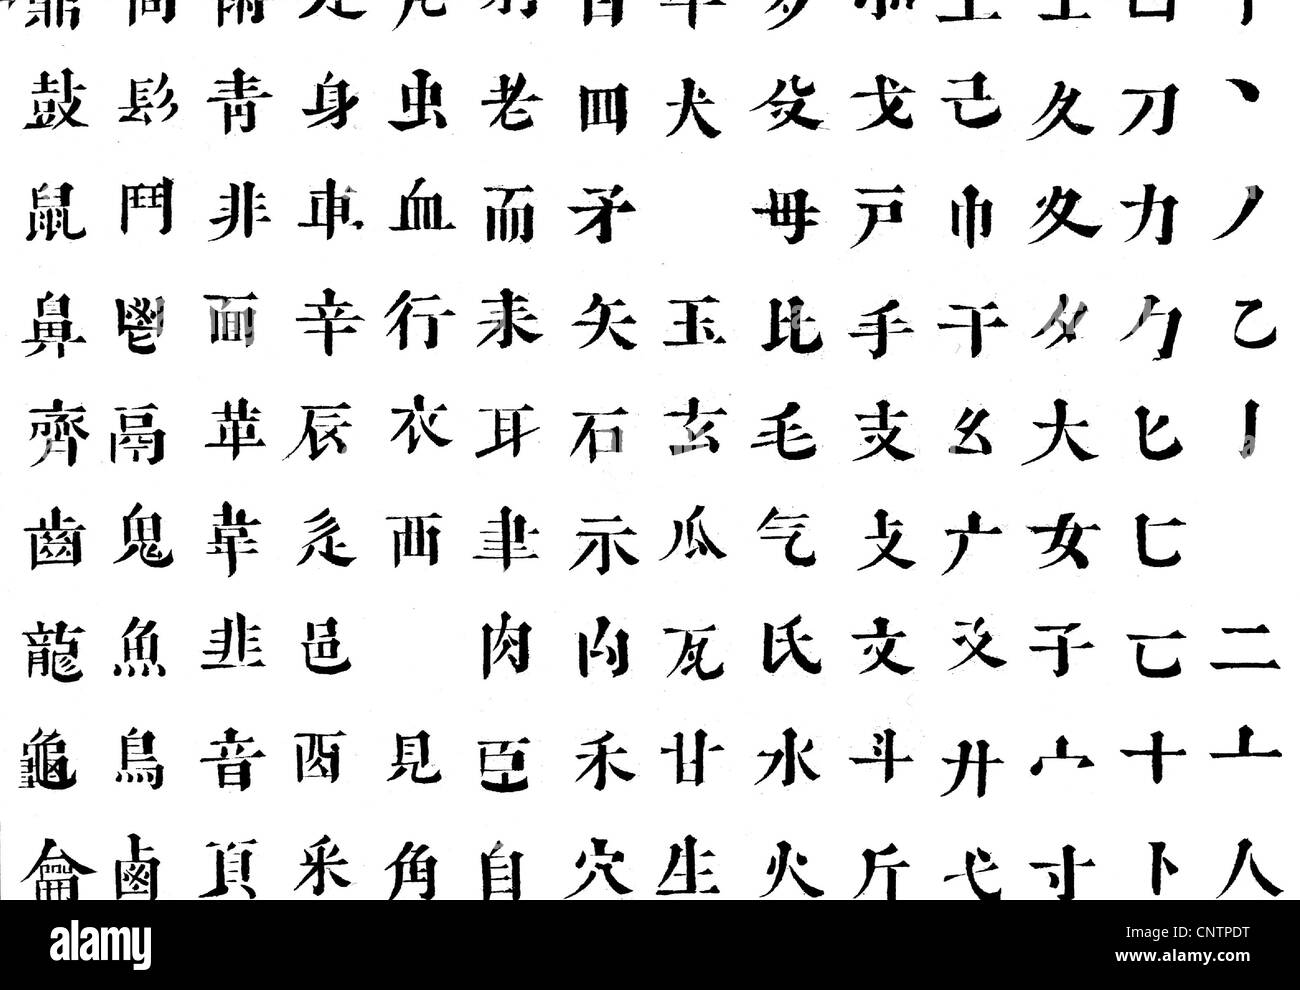 Chinese characters black and white stock photos images alamy script chinese characters excerpt from the chinese alphabet alphabetic character china biocorpaavc Gallery